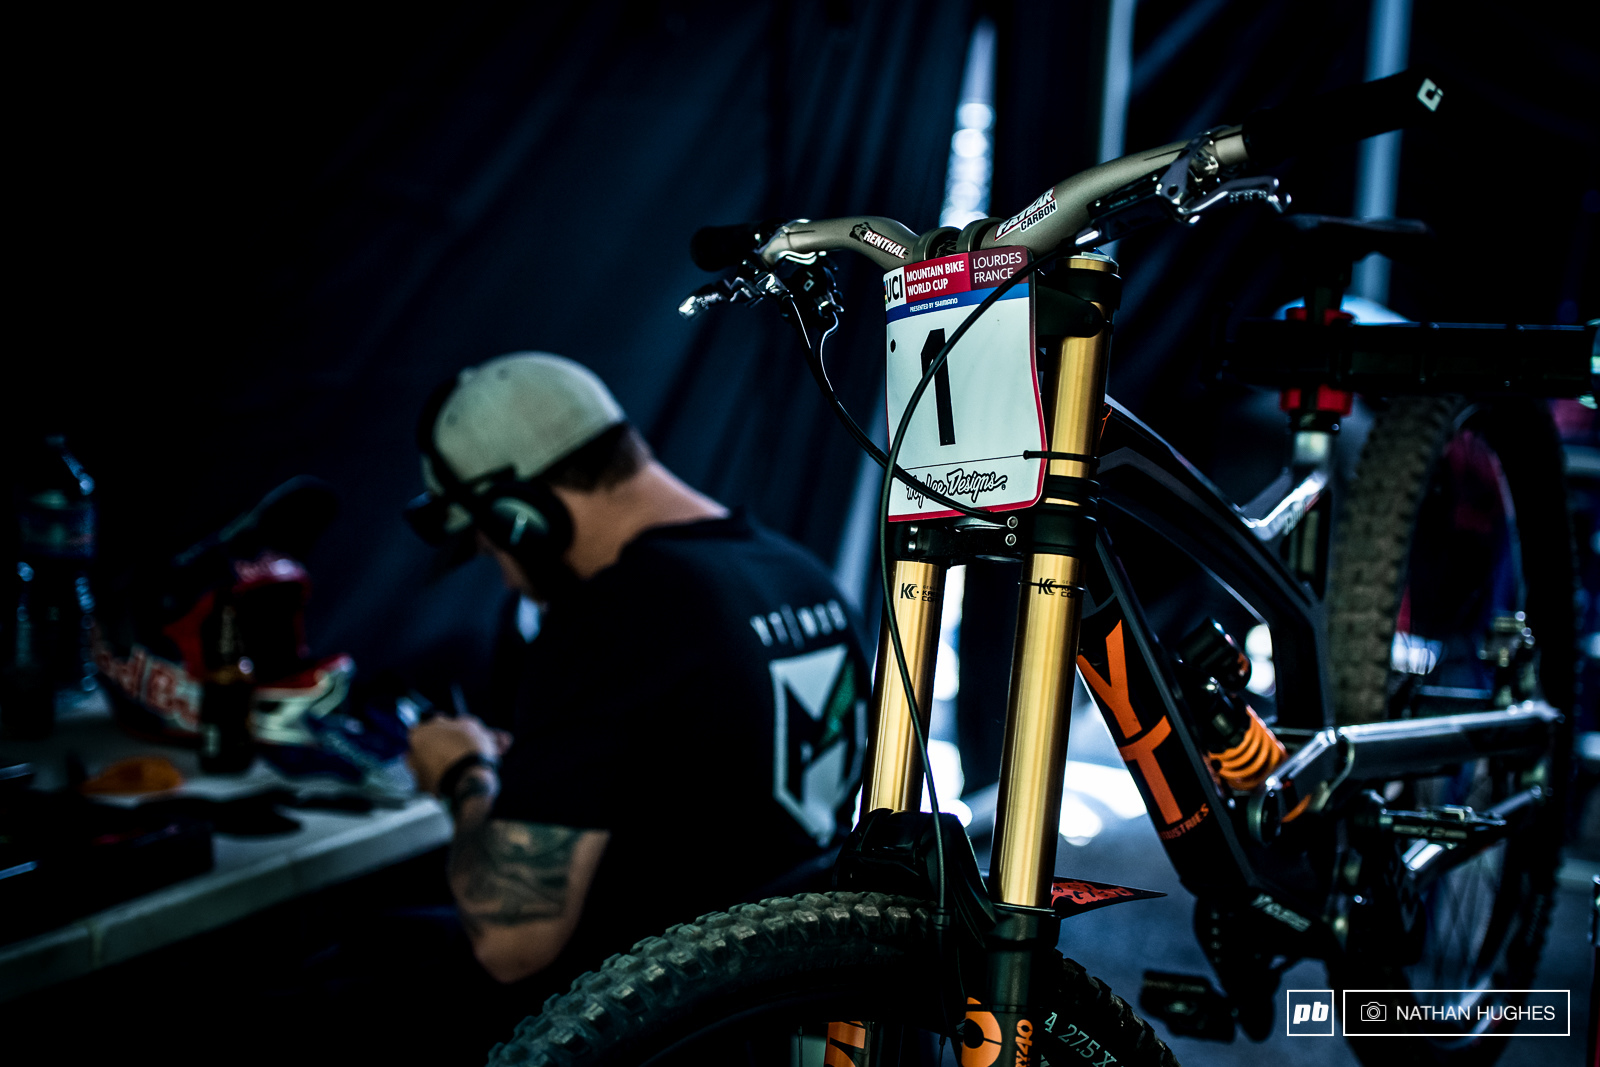 John Hall knuckles down to some qualie-day prep at the Mob pits.